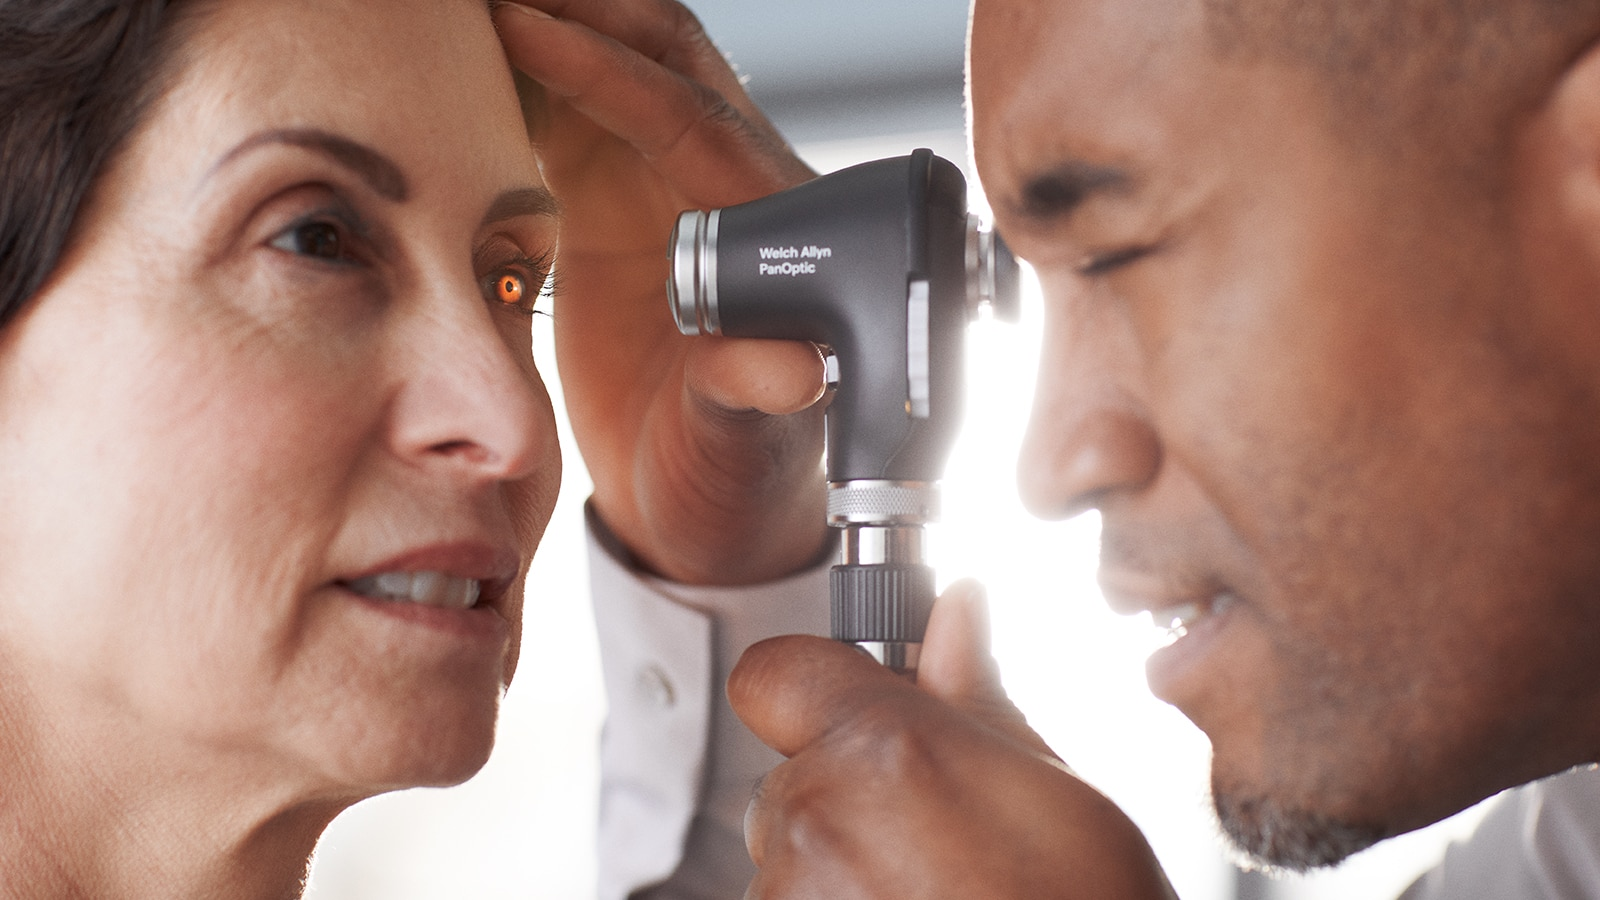 Welch Allyn PanOptic Plus Ophthalmoscope side view in application